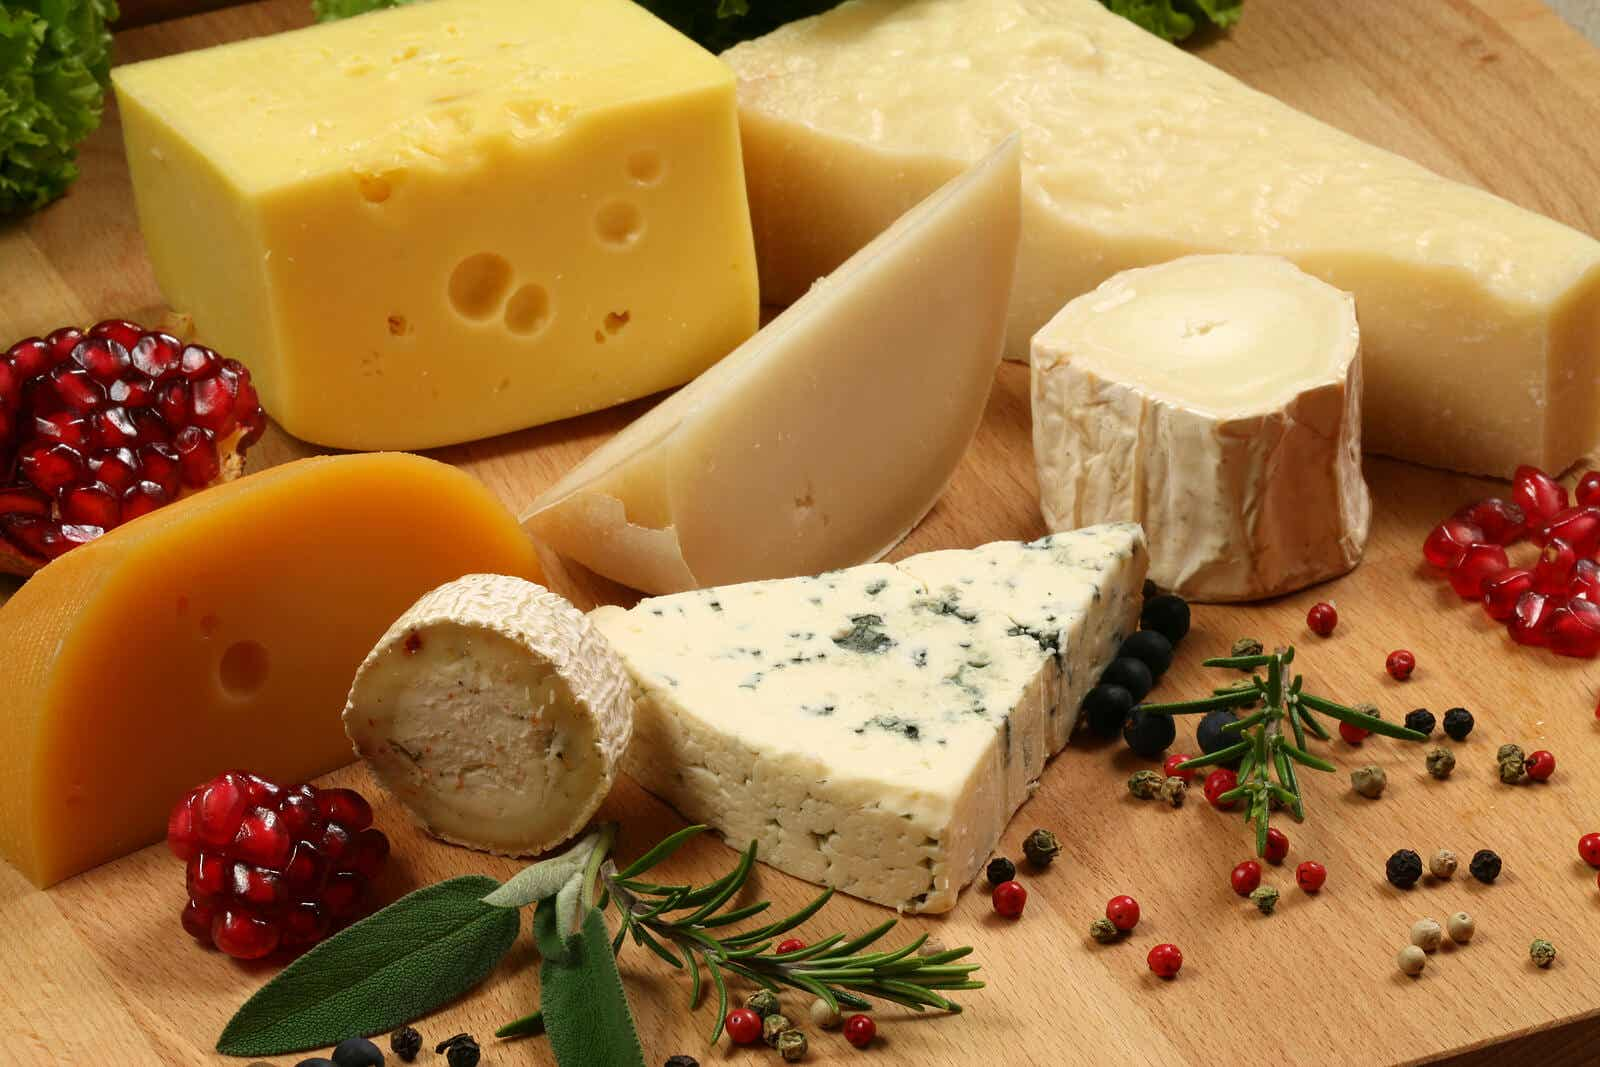 What Cheese Can You Eat During Pregnancy?